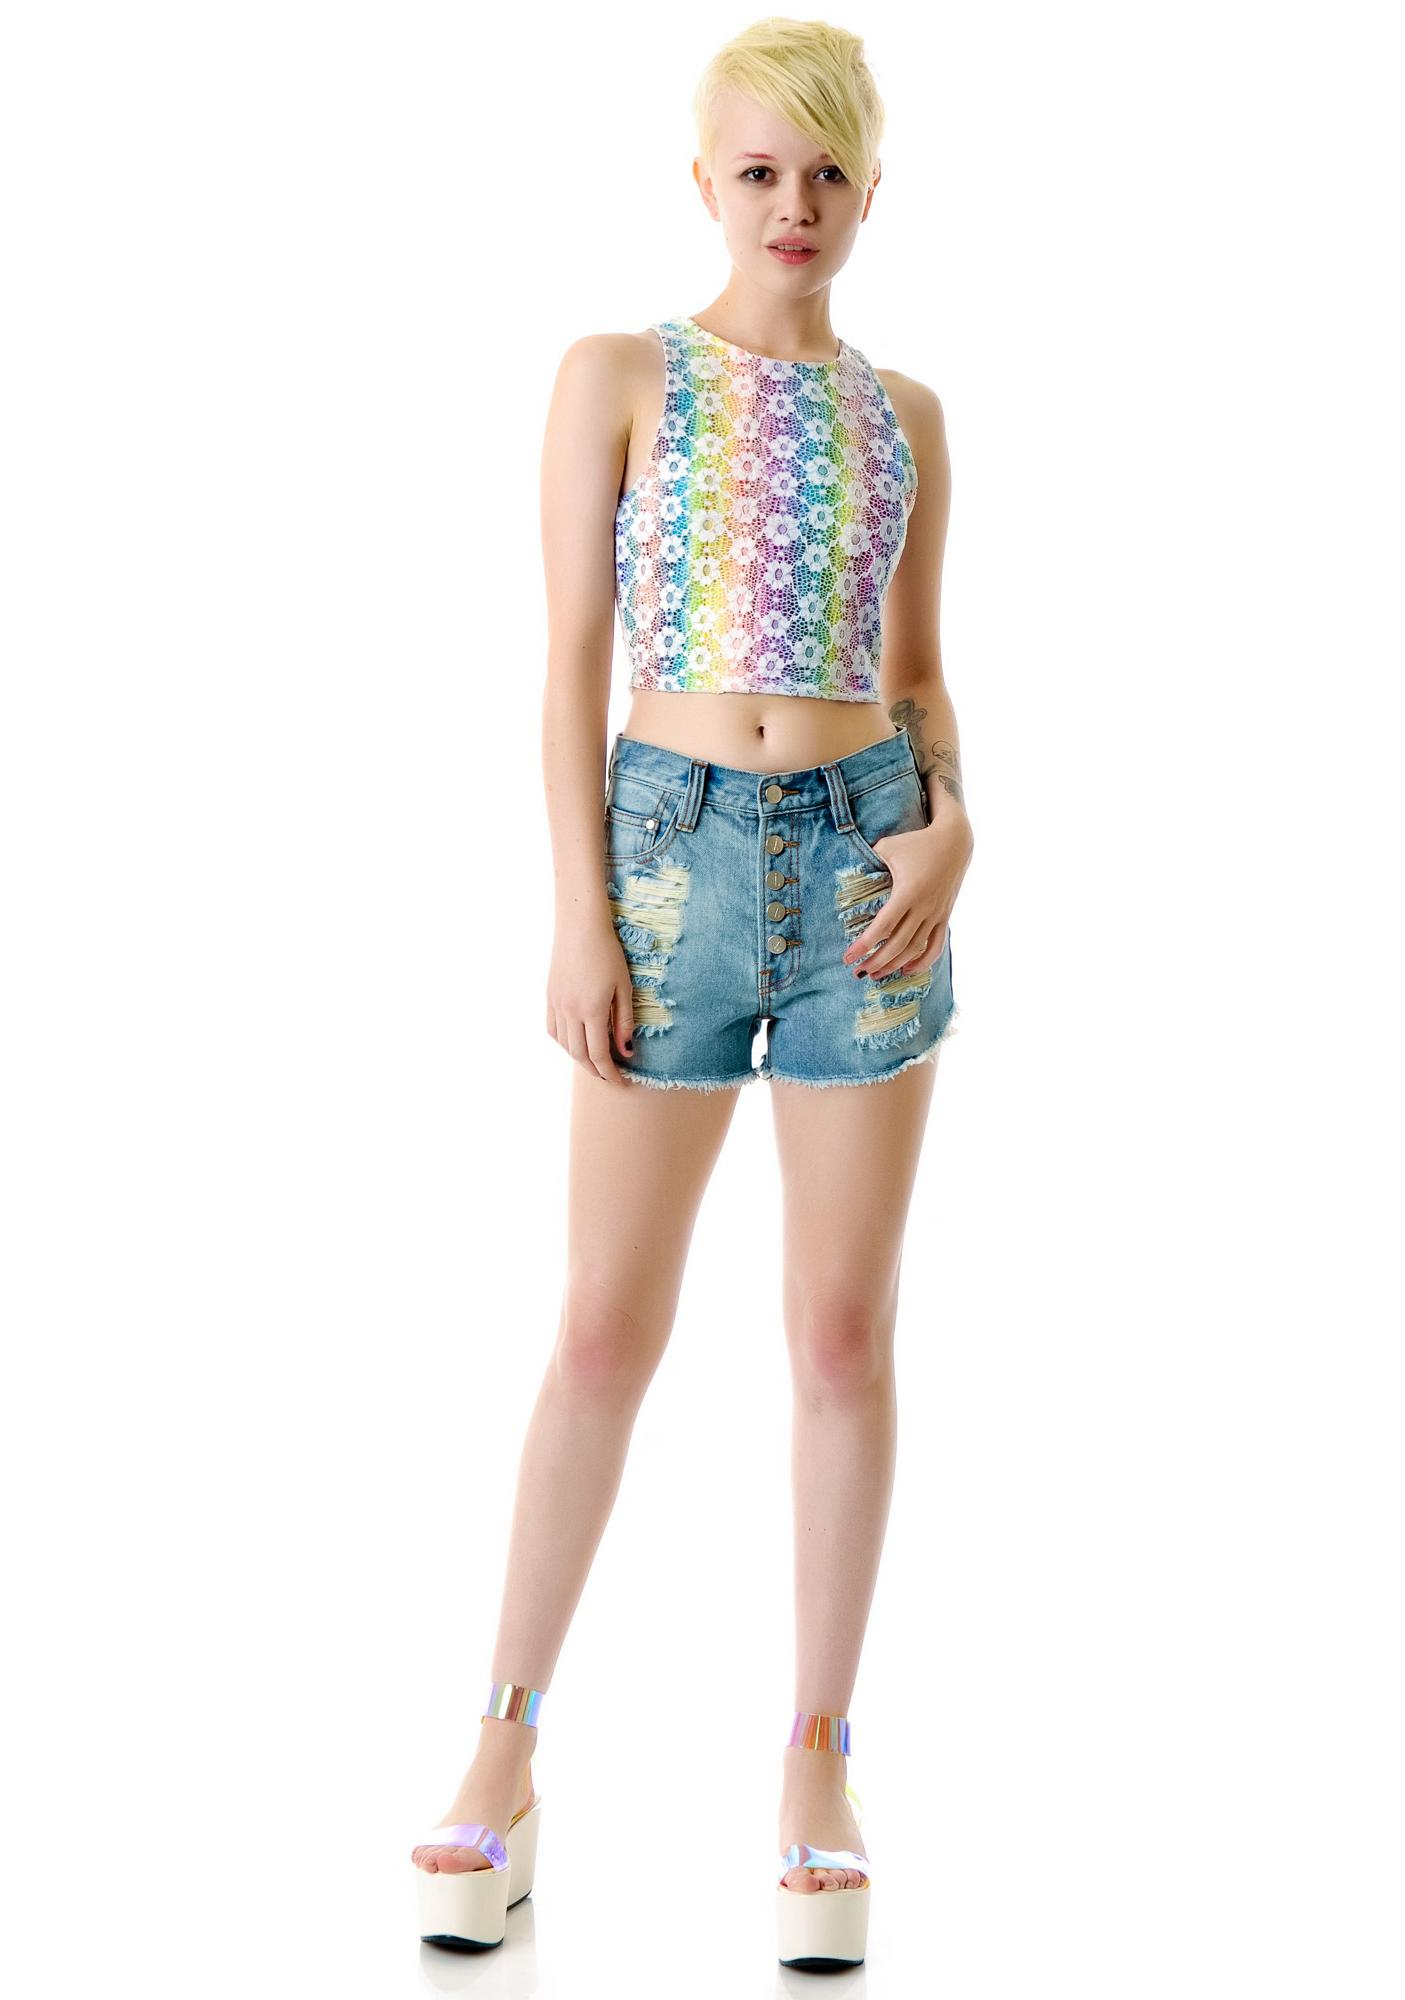 Mink Pink Exposed Slasher Flick Denim Shorts